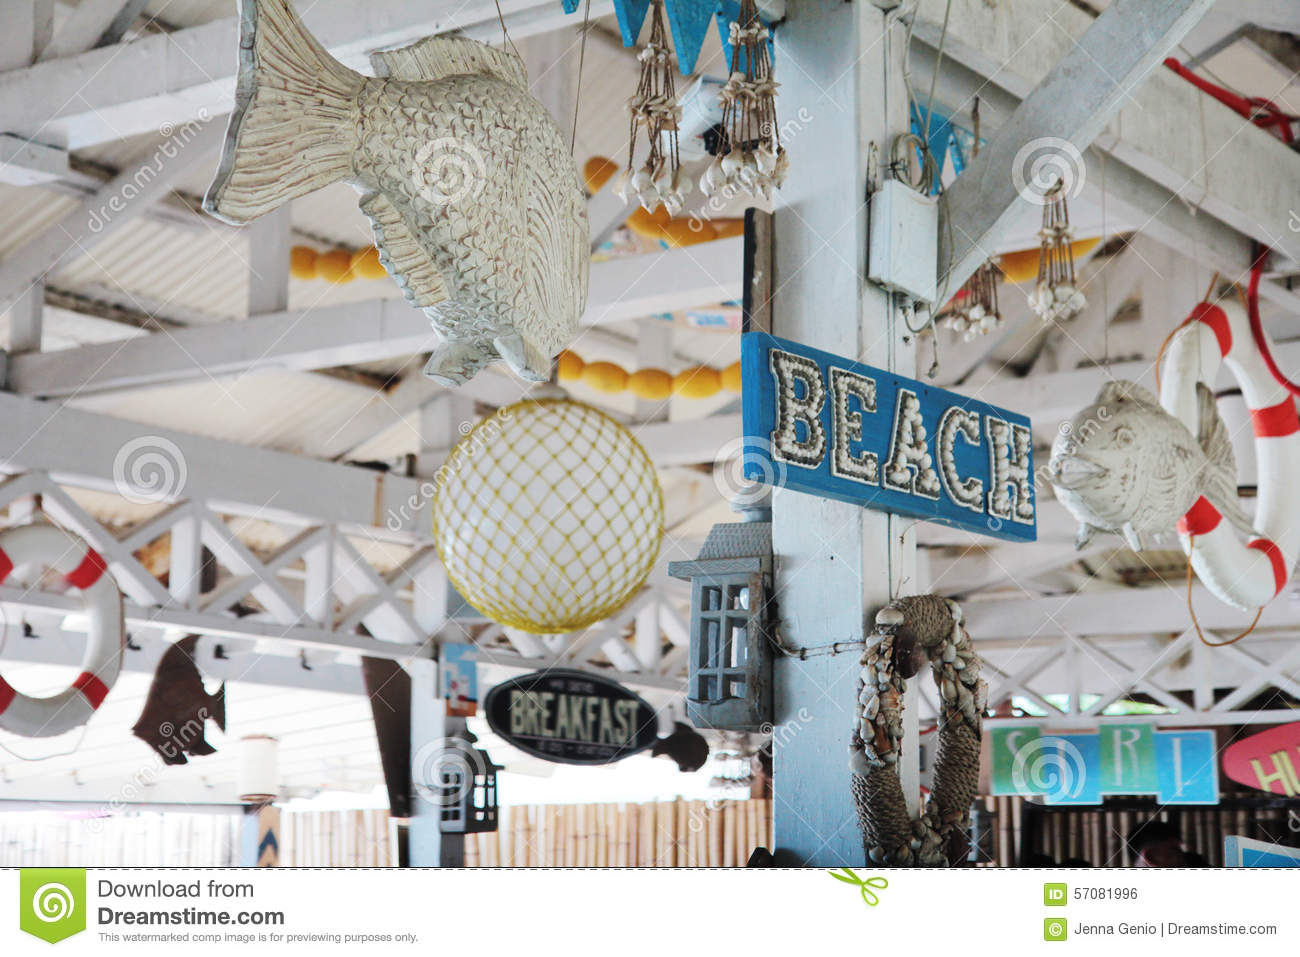 Beach Sign and Decor stock photo. Image of philippines - 57081996